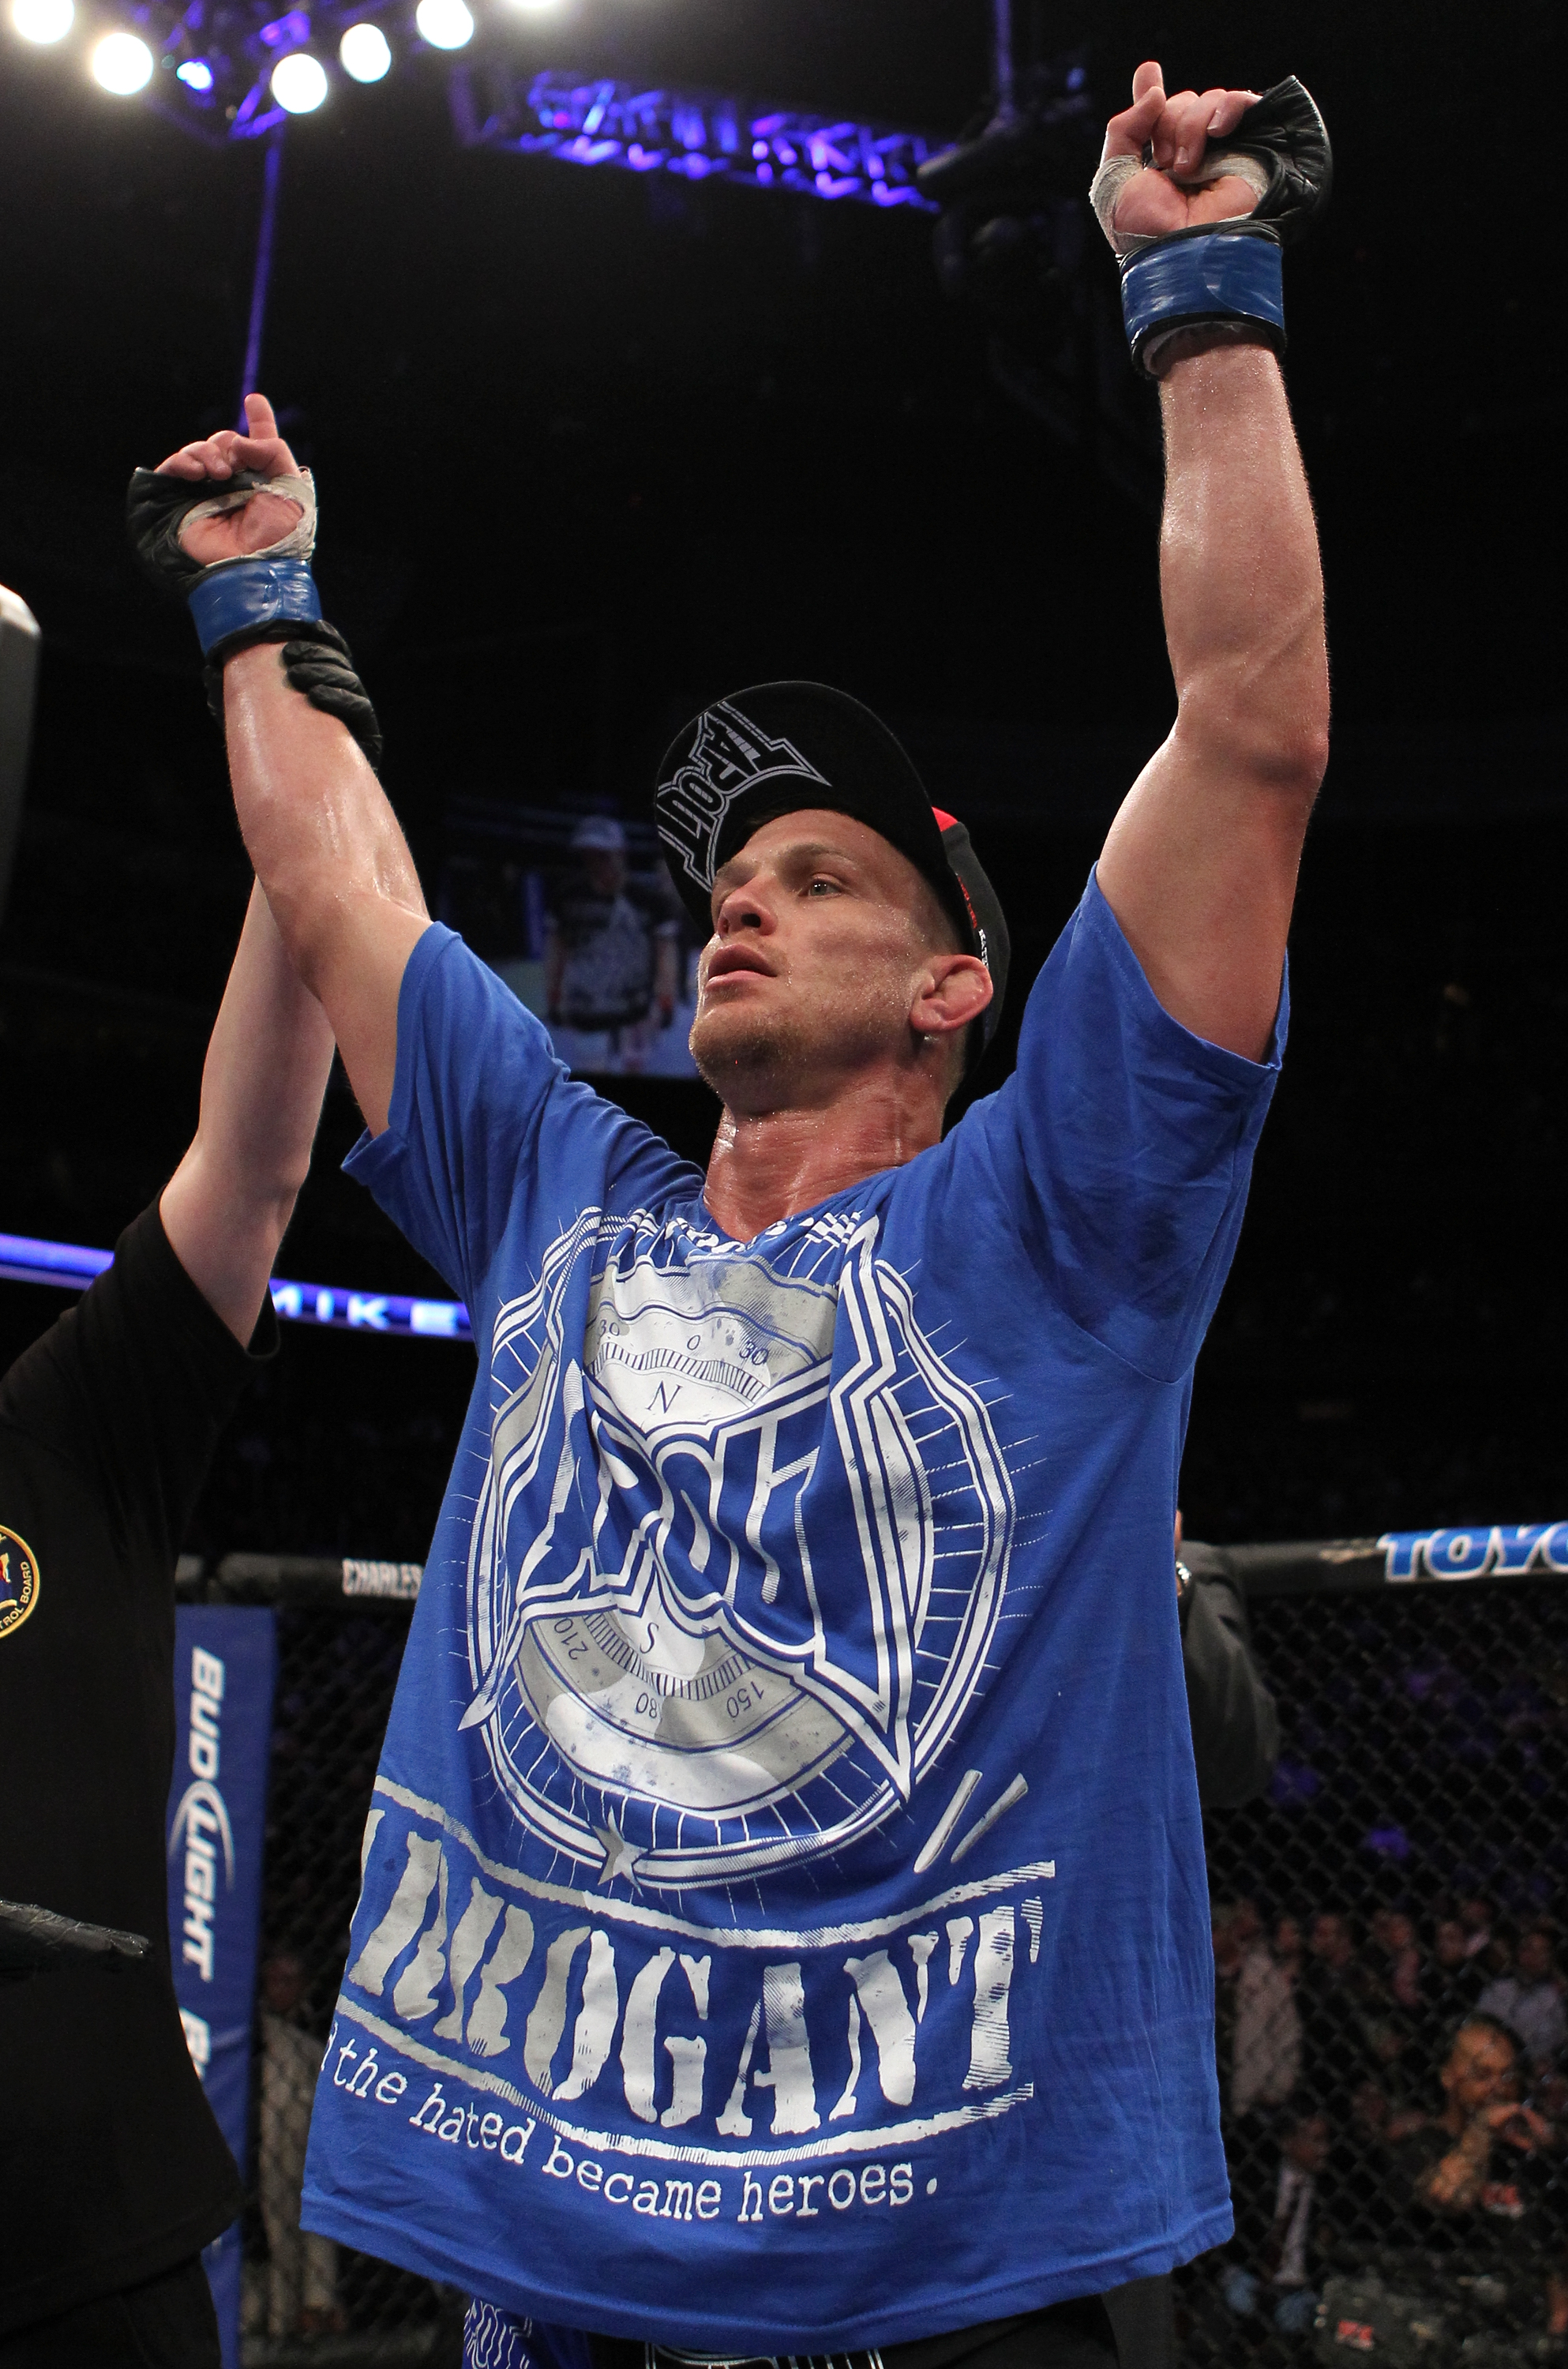 UFC 128: Mike Pyle celebrates his win